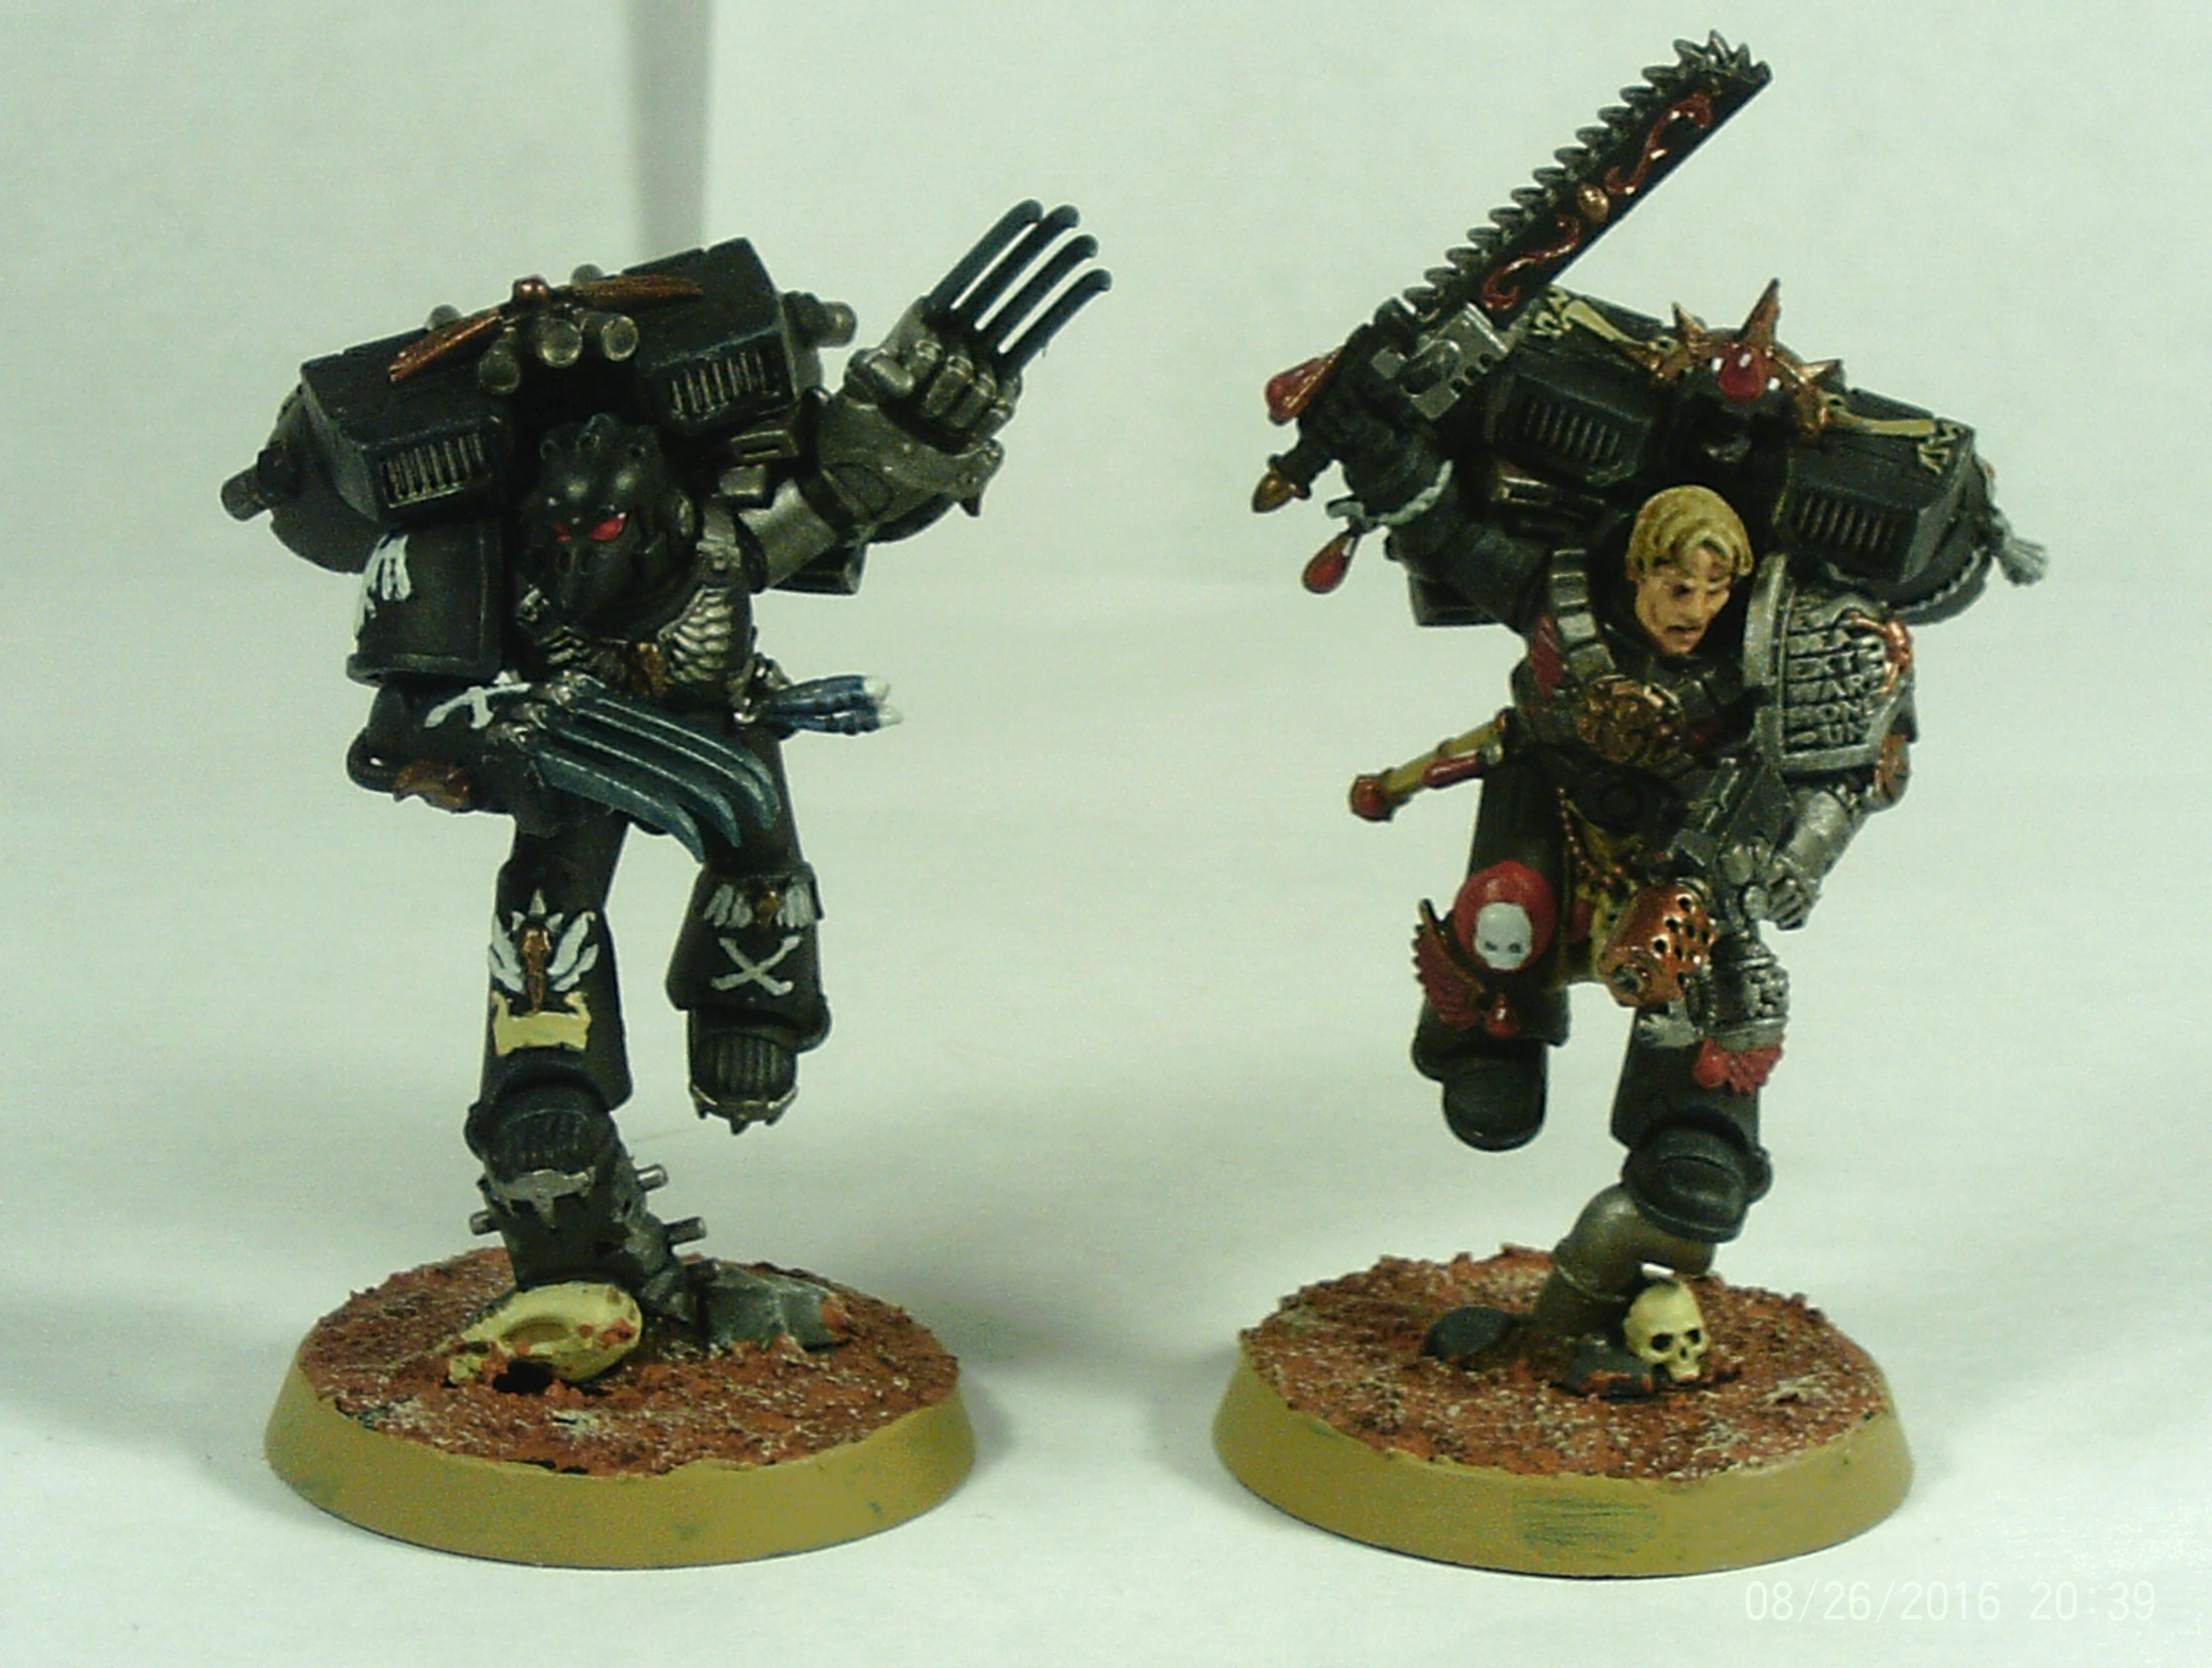 Alien, Black, Deathwatch, Imperial, Space, Space Marines, Xenos